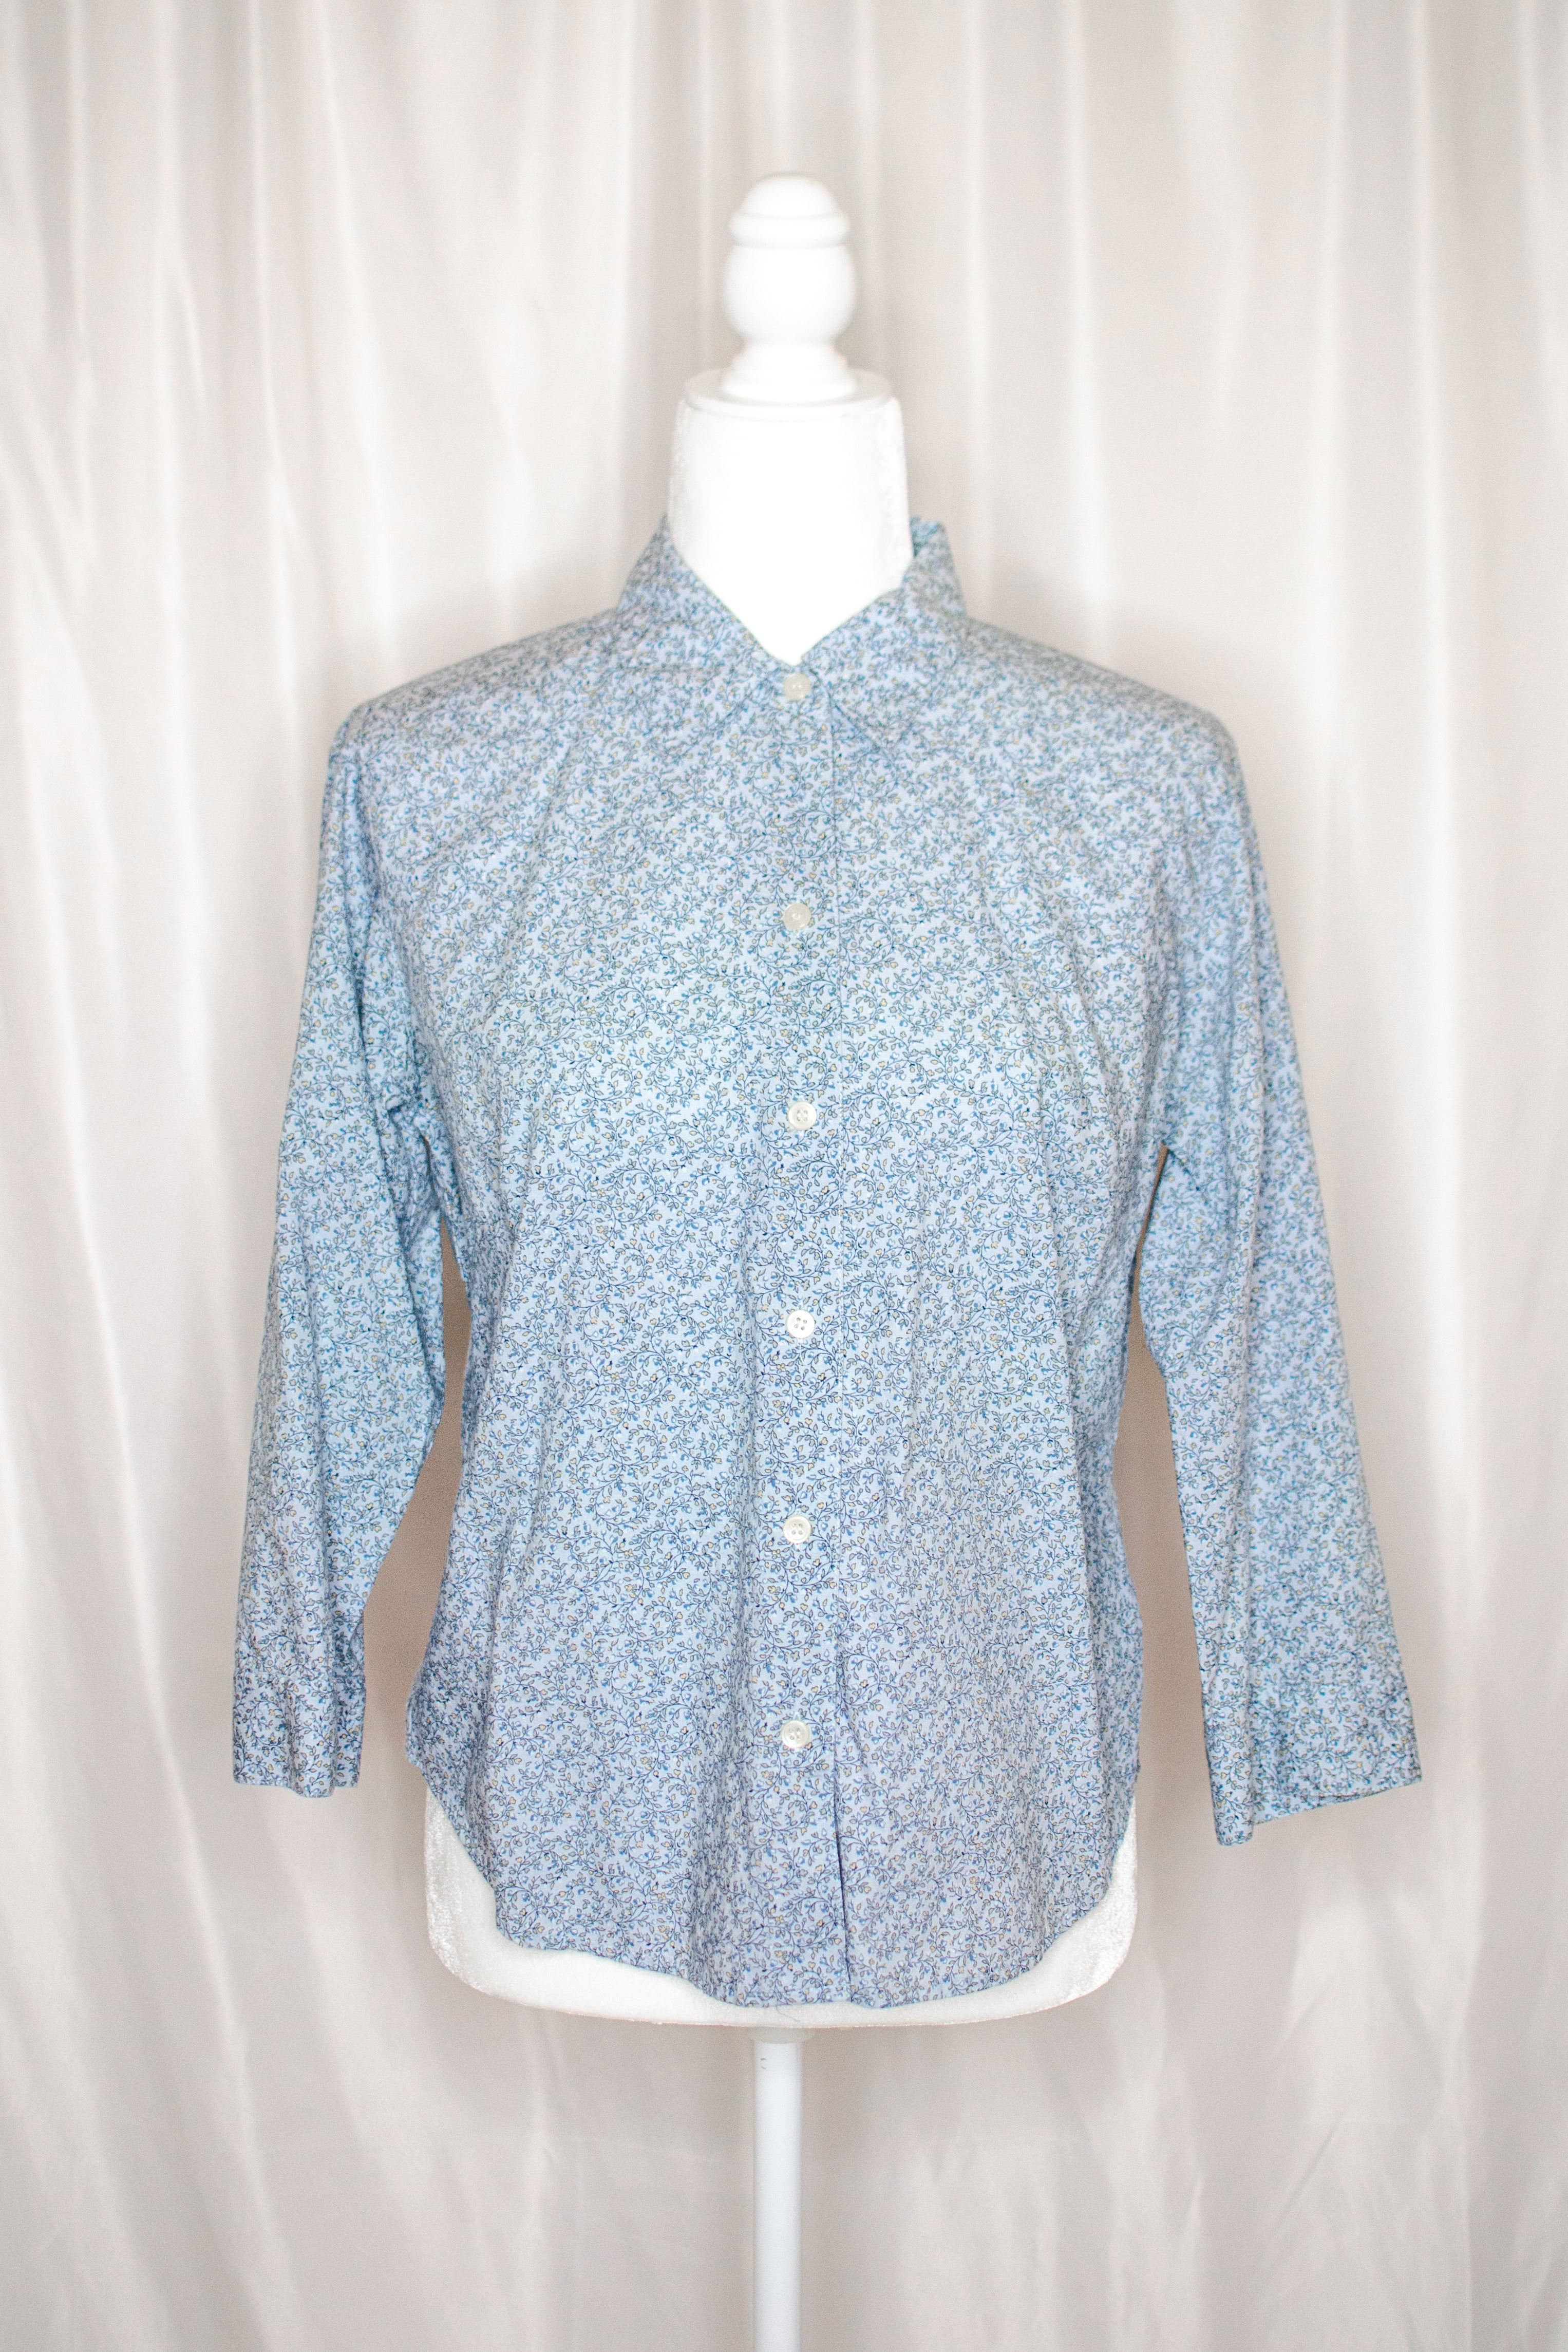 Vintage 90s Light Blue Floral Shirt by Liz Claiborne / S-M